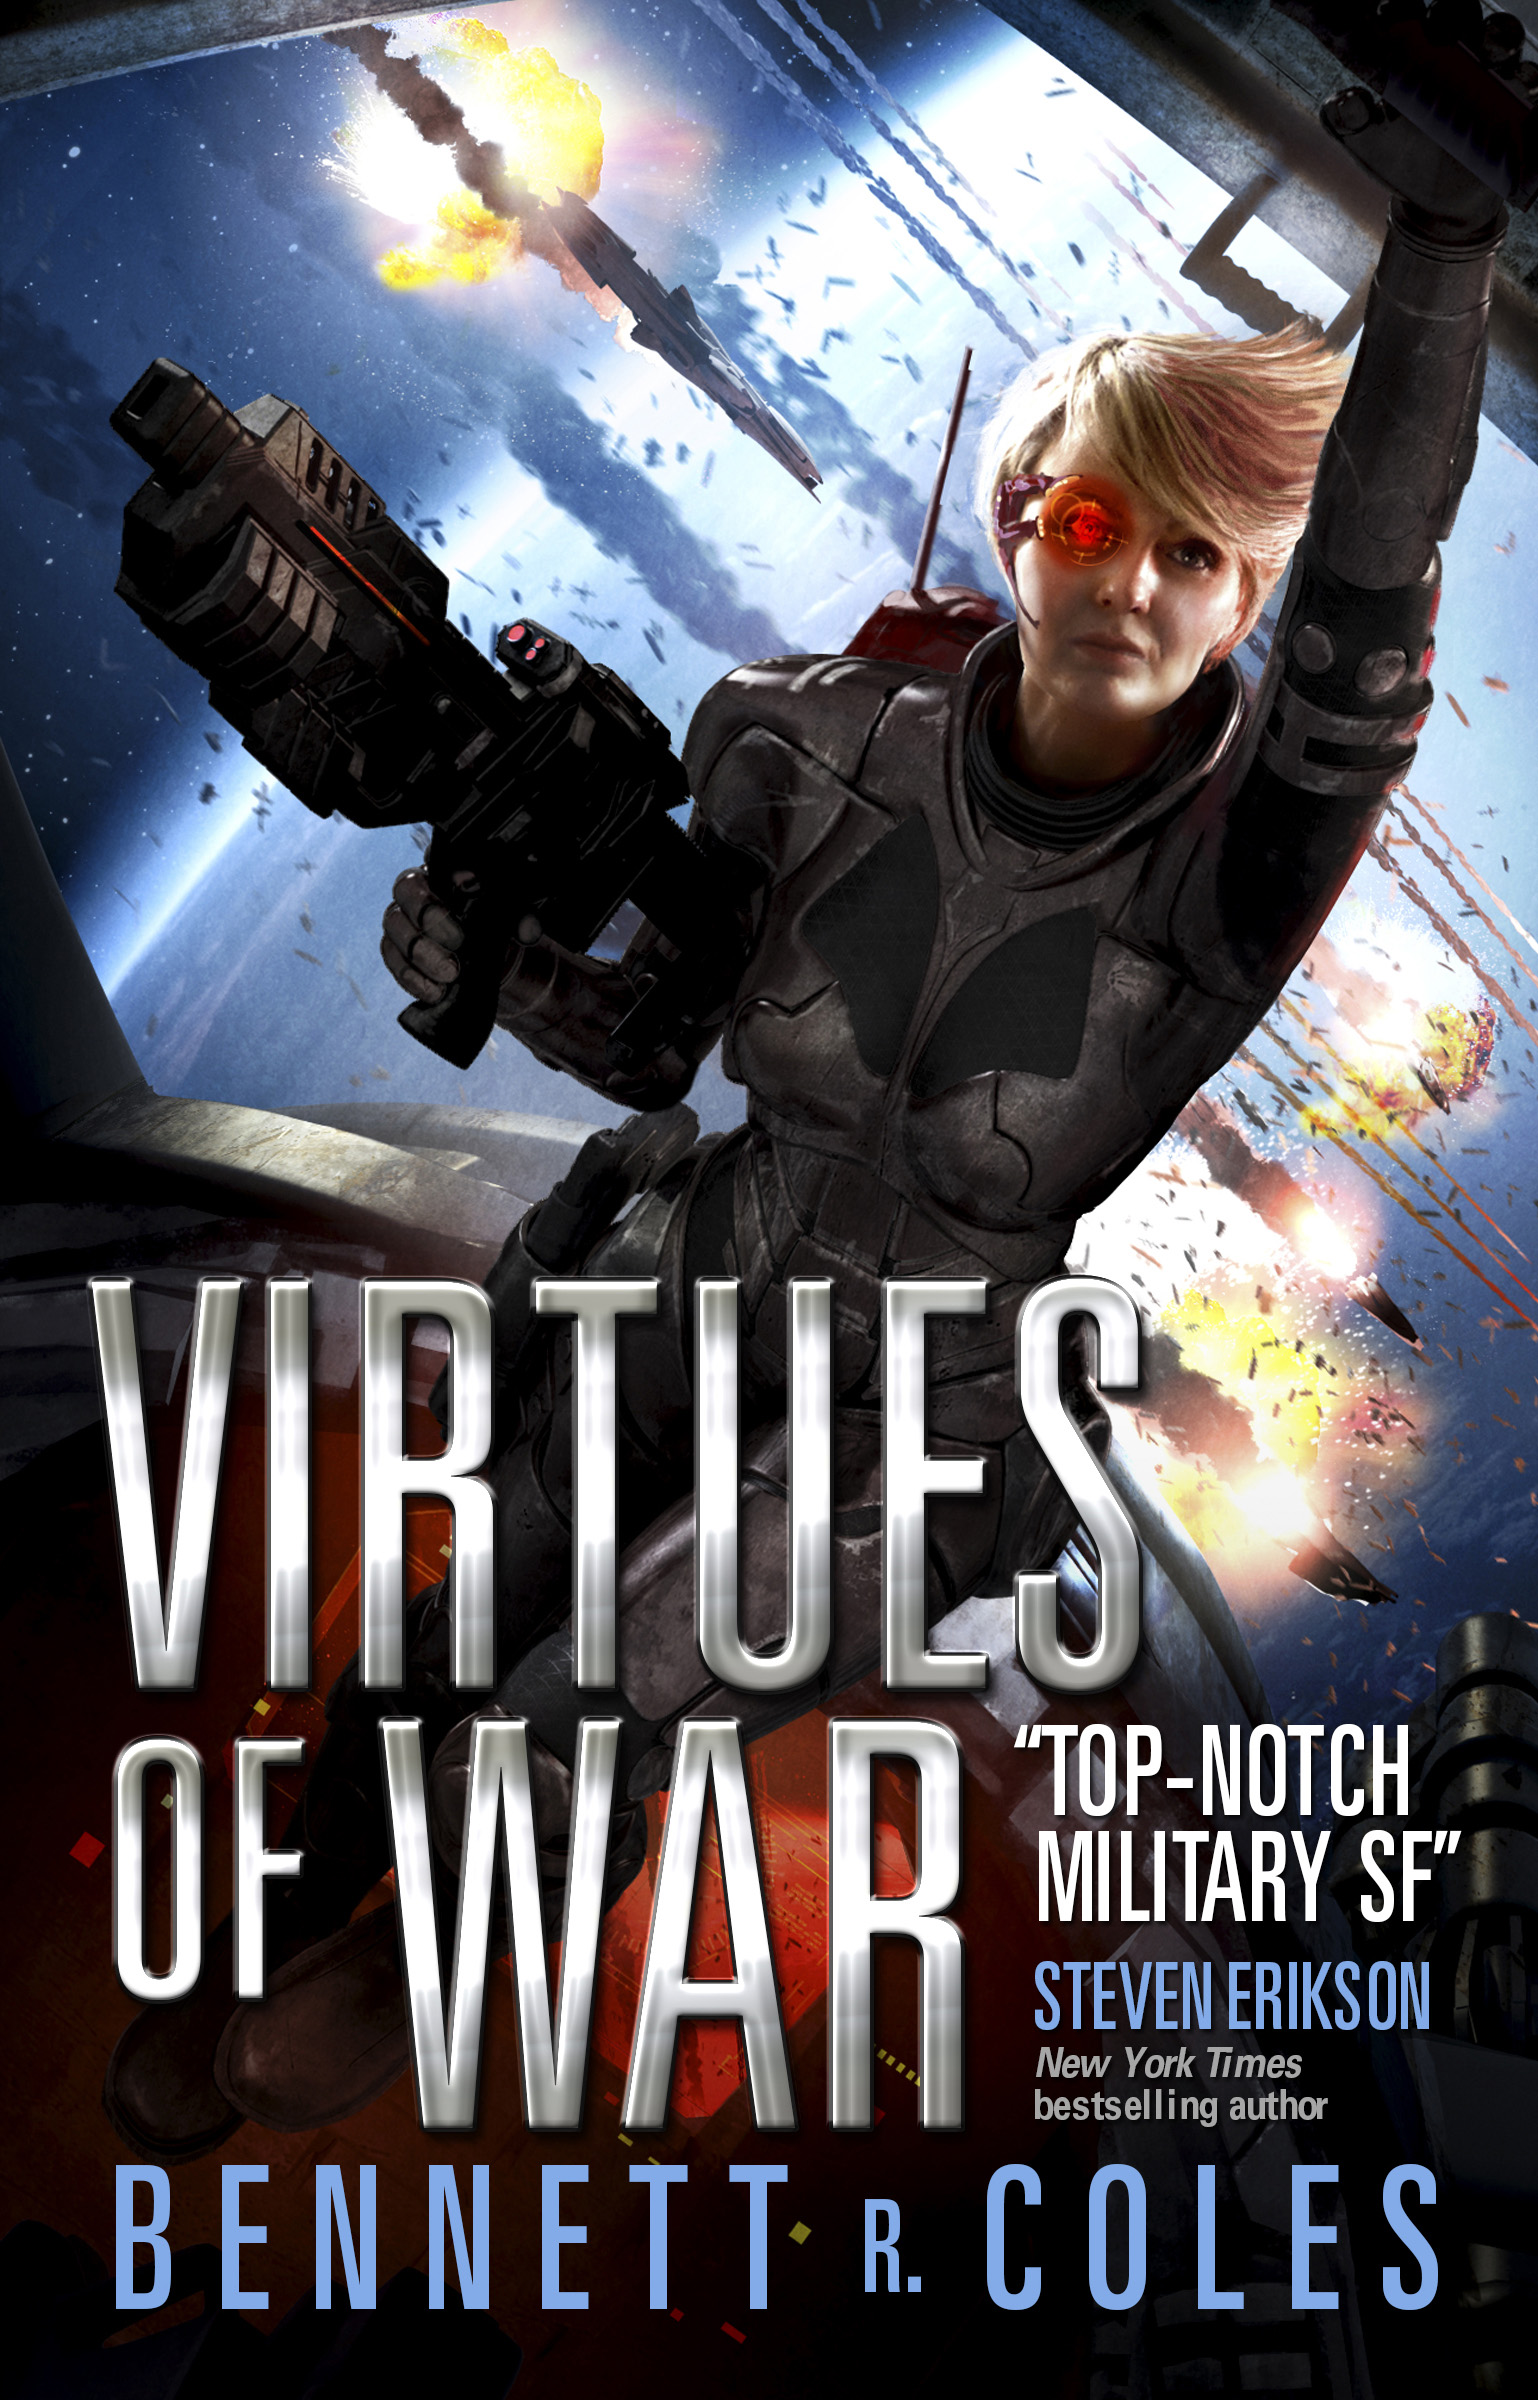 VIRTUES OF WAR Book one